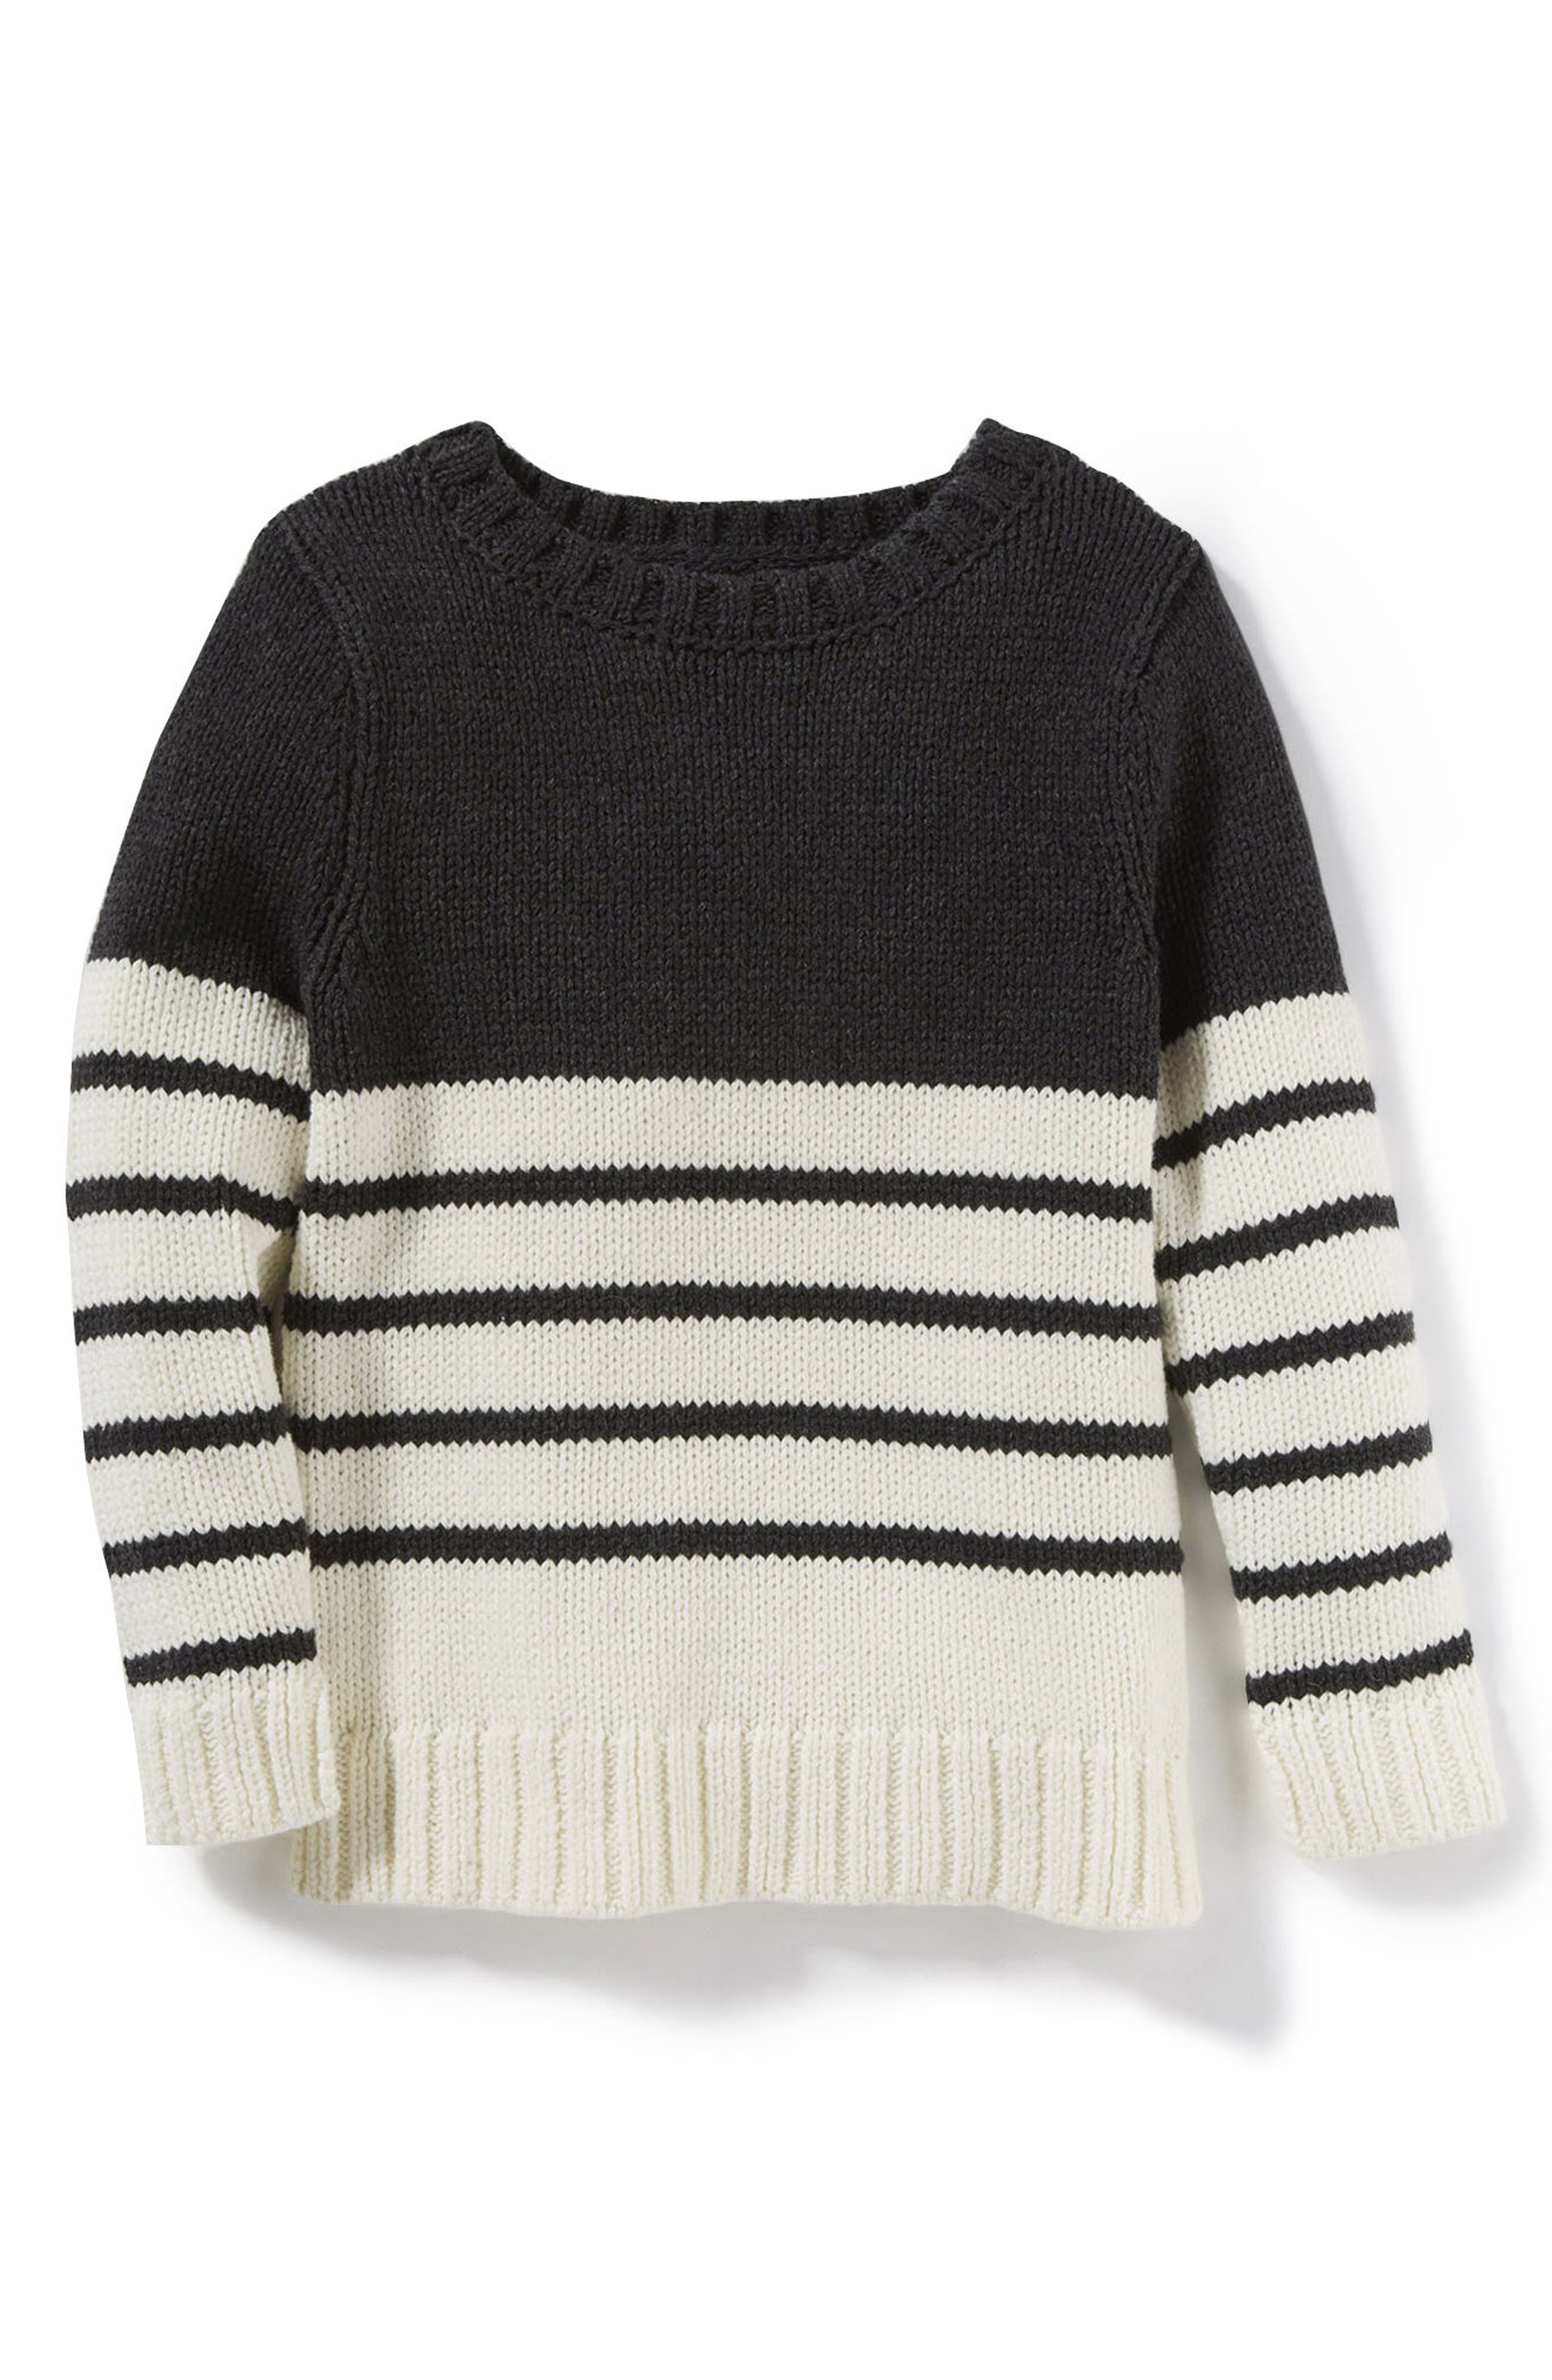 Alternate Image 1 Selected - Peek Claire Colorblock Stripe Sweater (Toddler Girls, Little Girls & Big Girls)